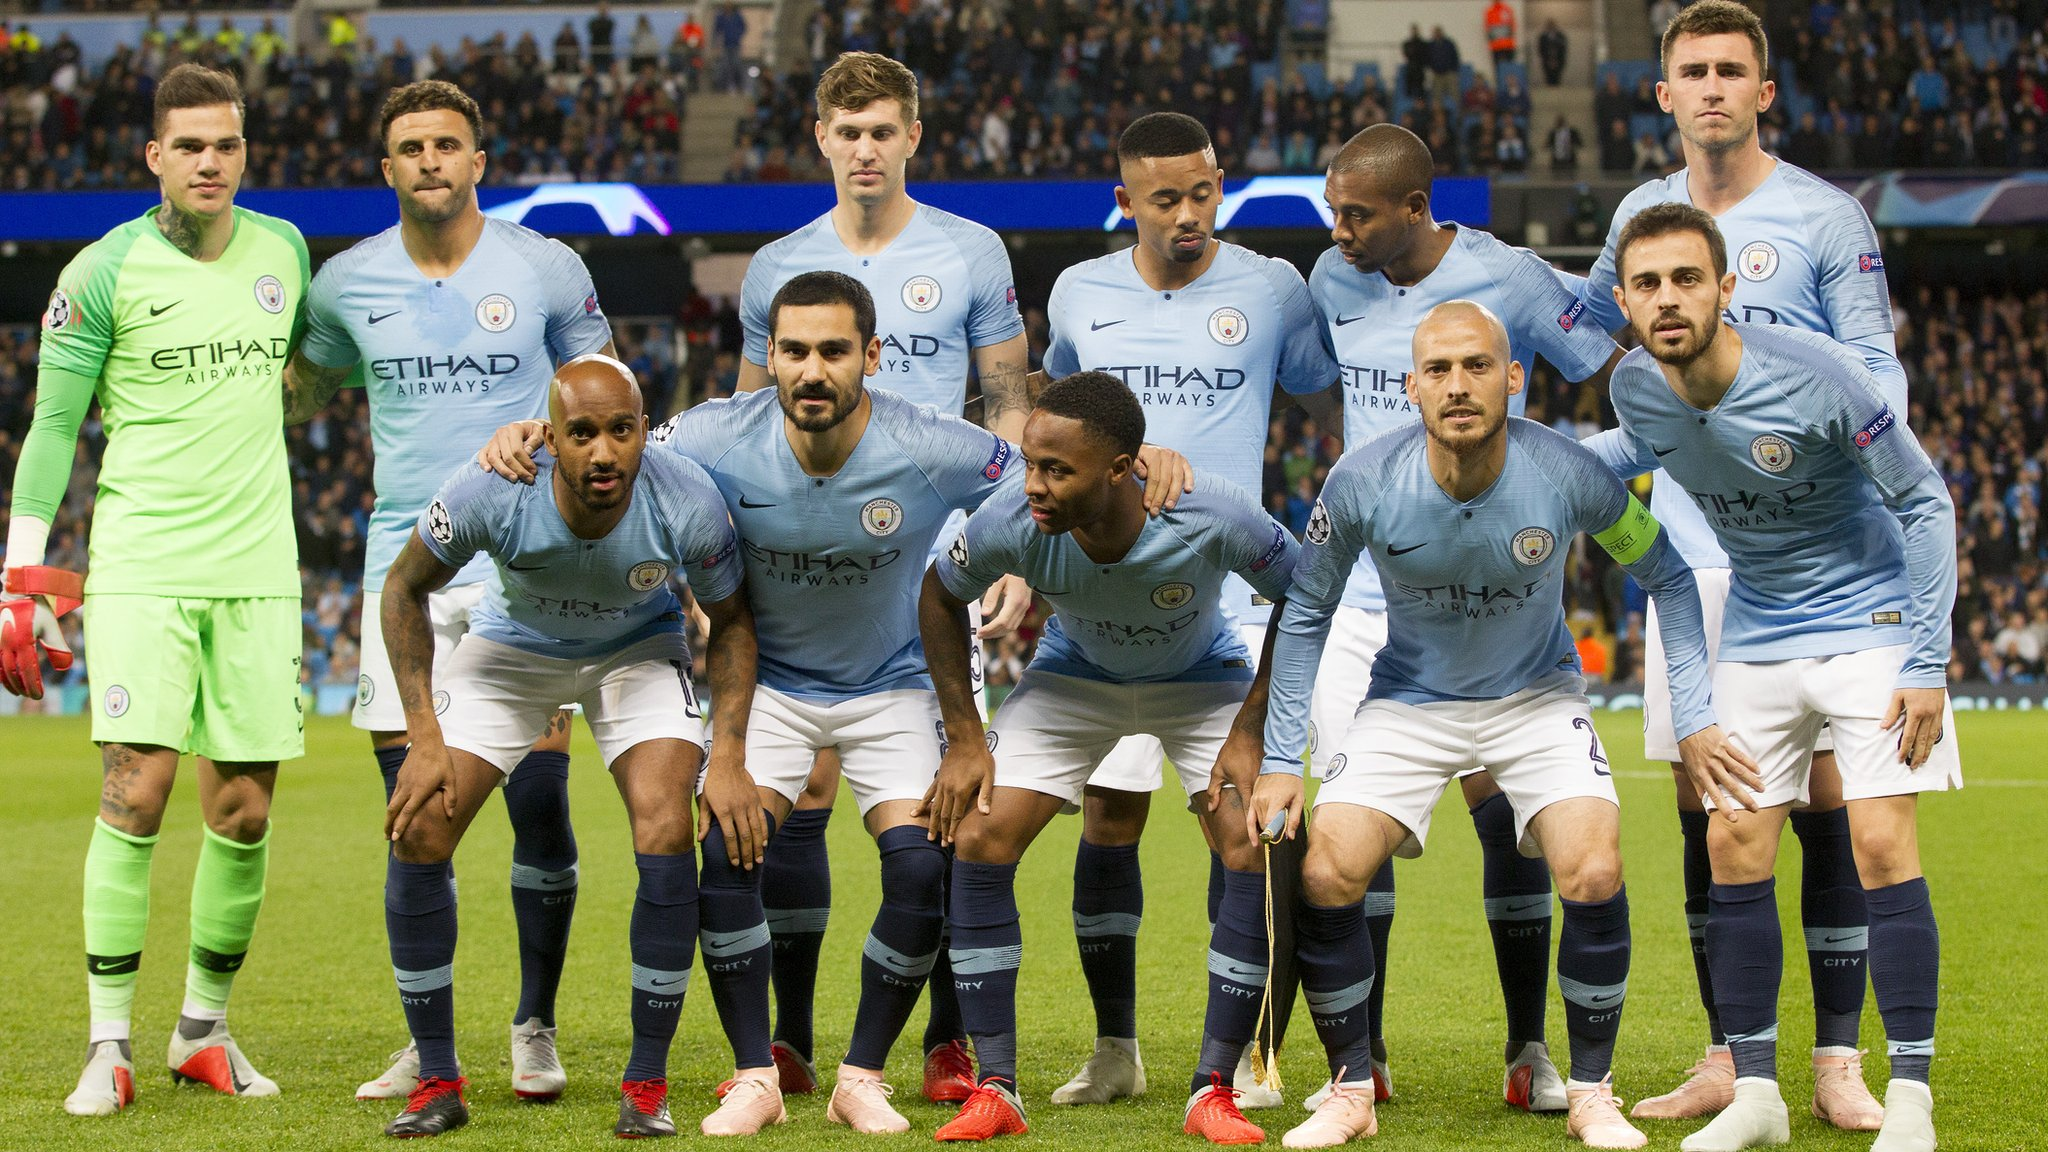 Man City 1-2 Lyon: City reduced to 'a barely recognisable rabble'